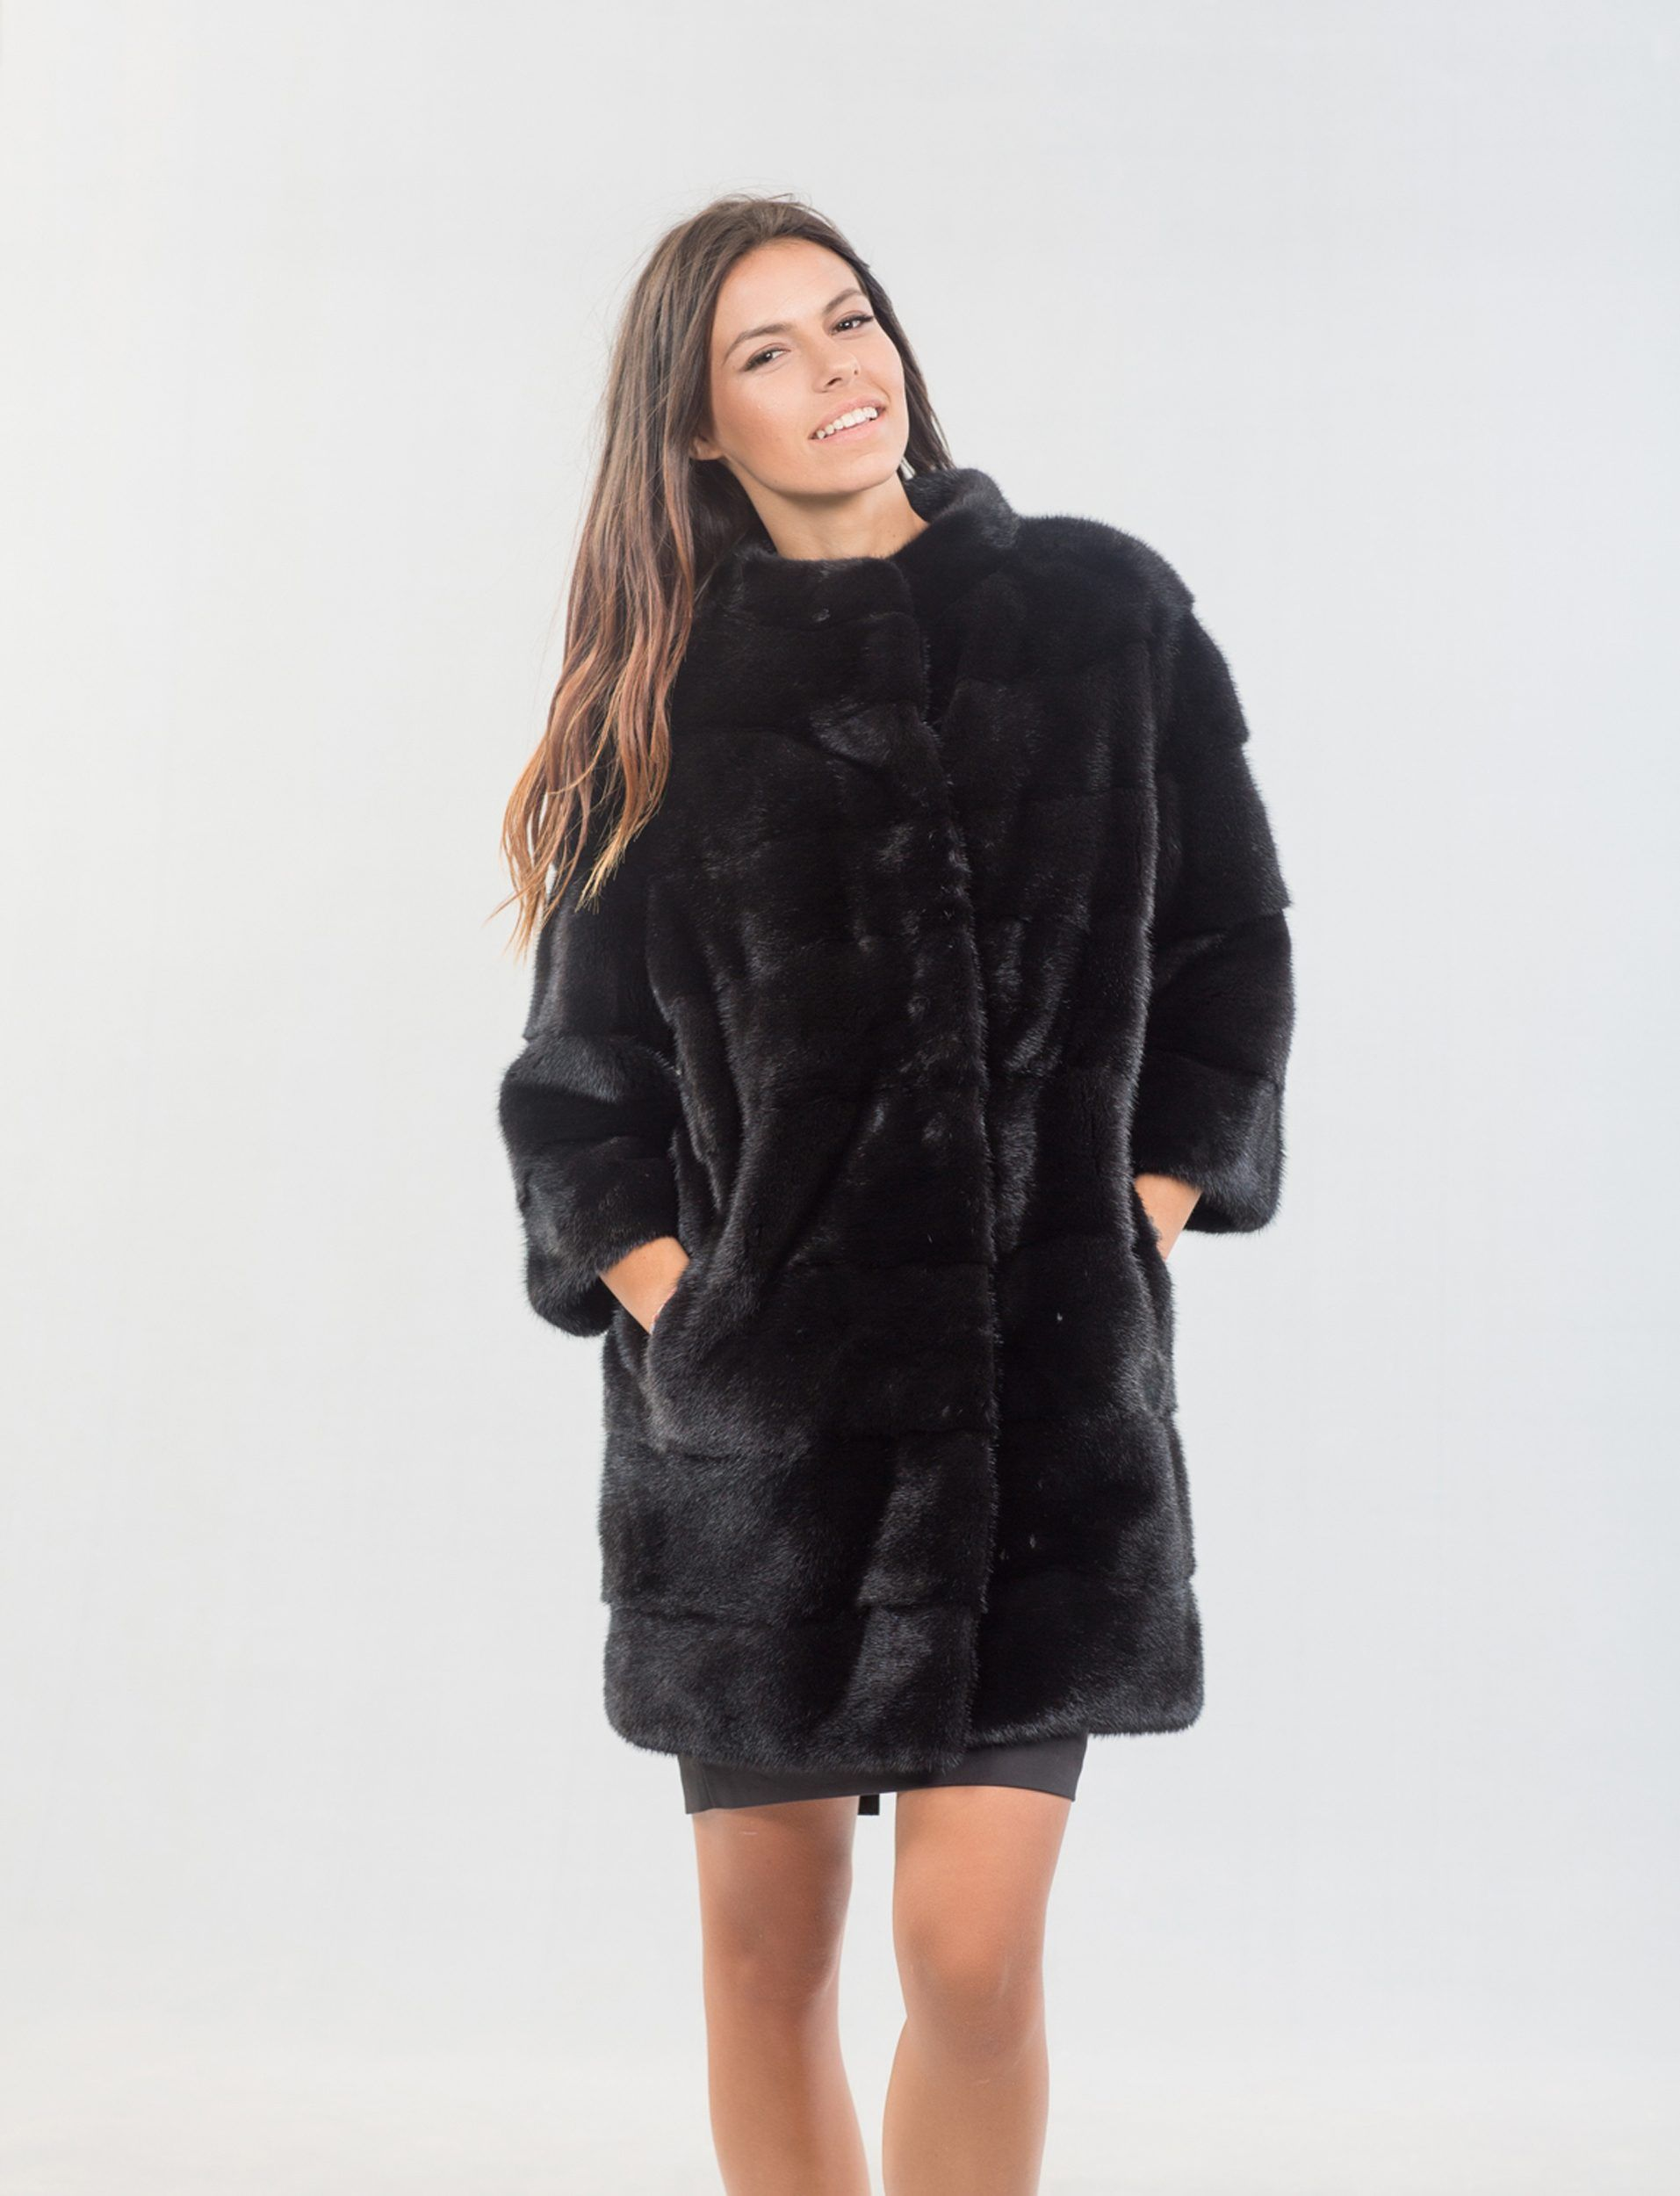 8f6b9e51ab Nafa Black Mink Fur Long Jacket #black #mink #fur #long #jacket #real  #style #realfur #elegant #haute #luxury #chic #outfit #women #classy  #online #store